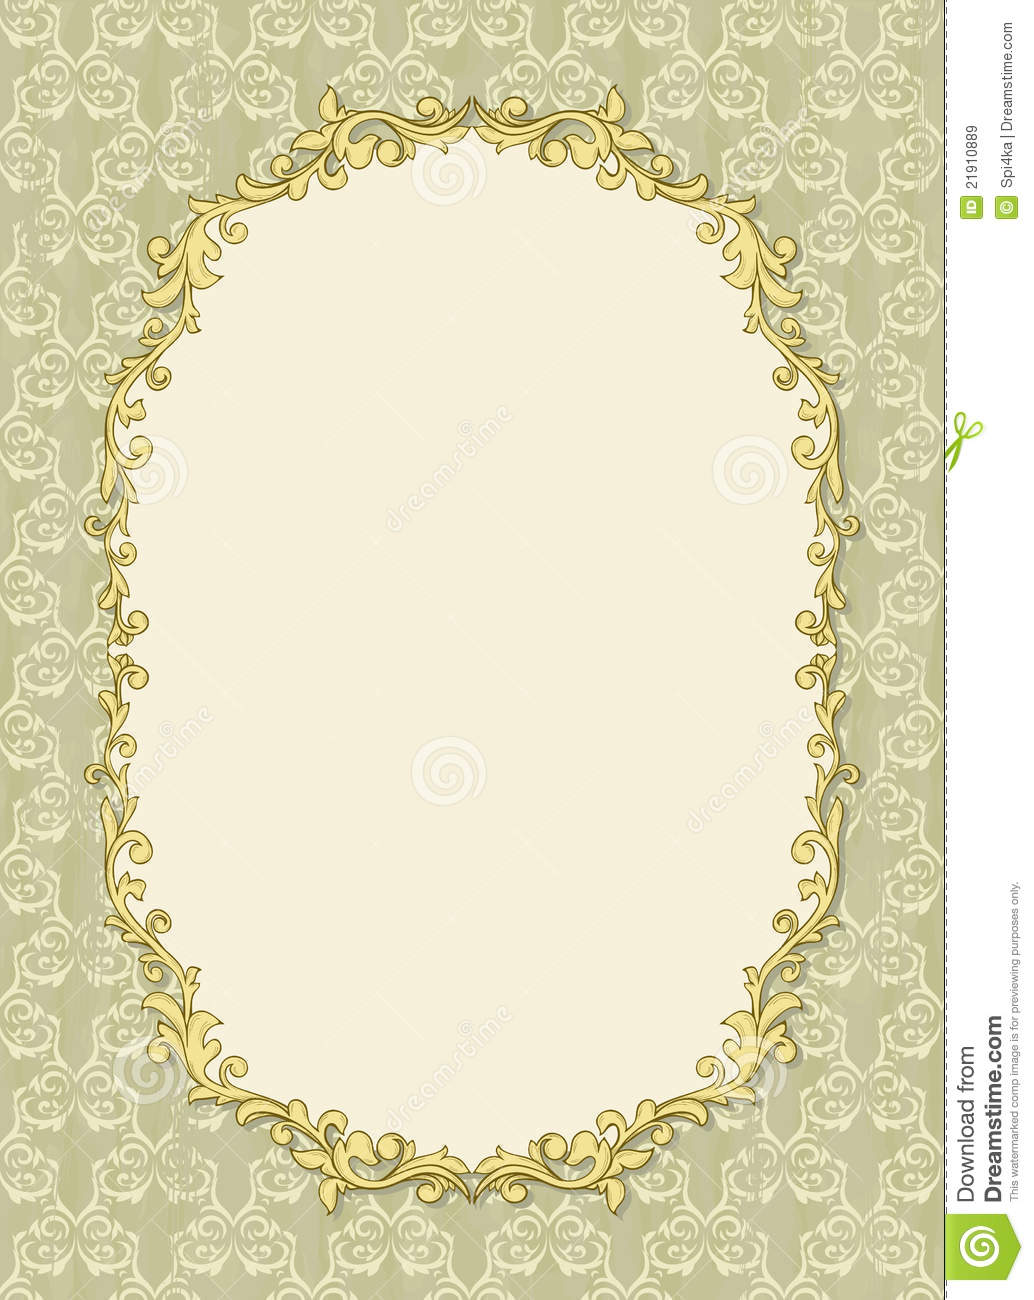 Vintage Frame With Shadow On Seamless Wallpaper Stock Vector ...